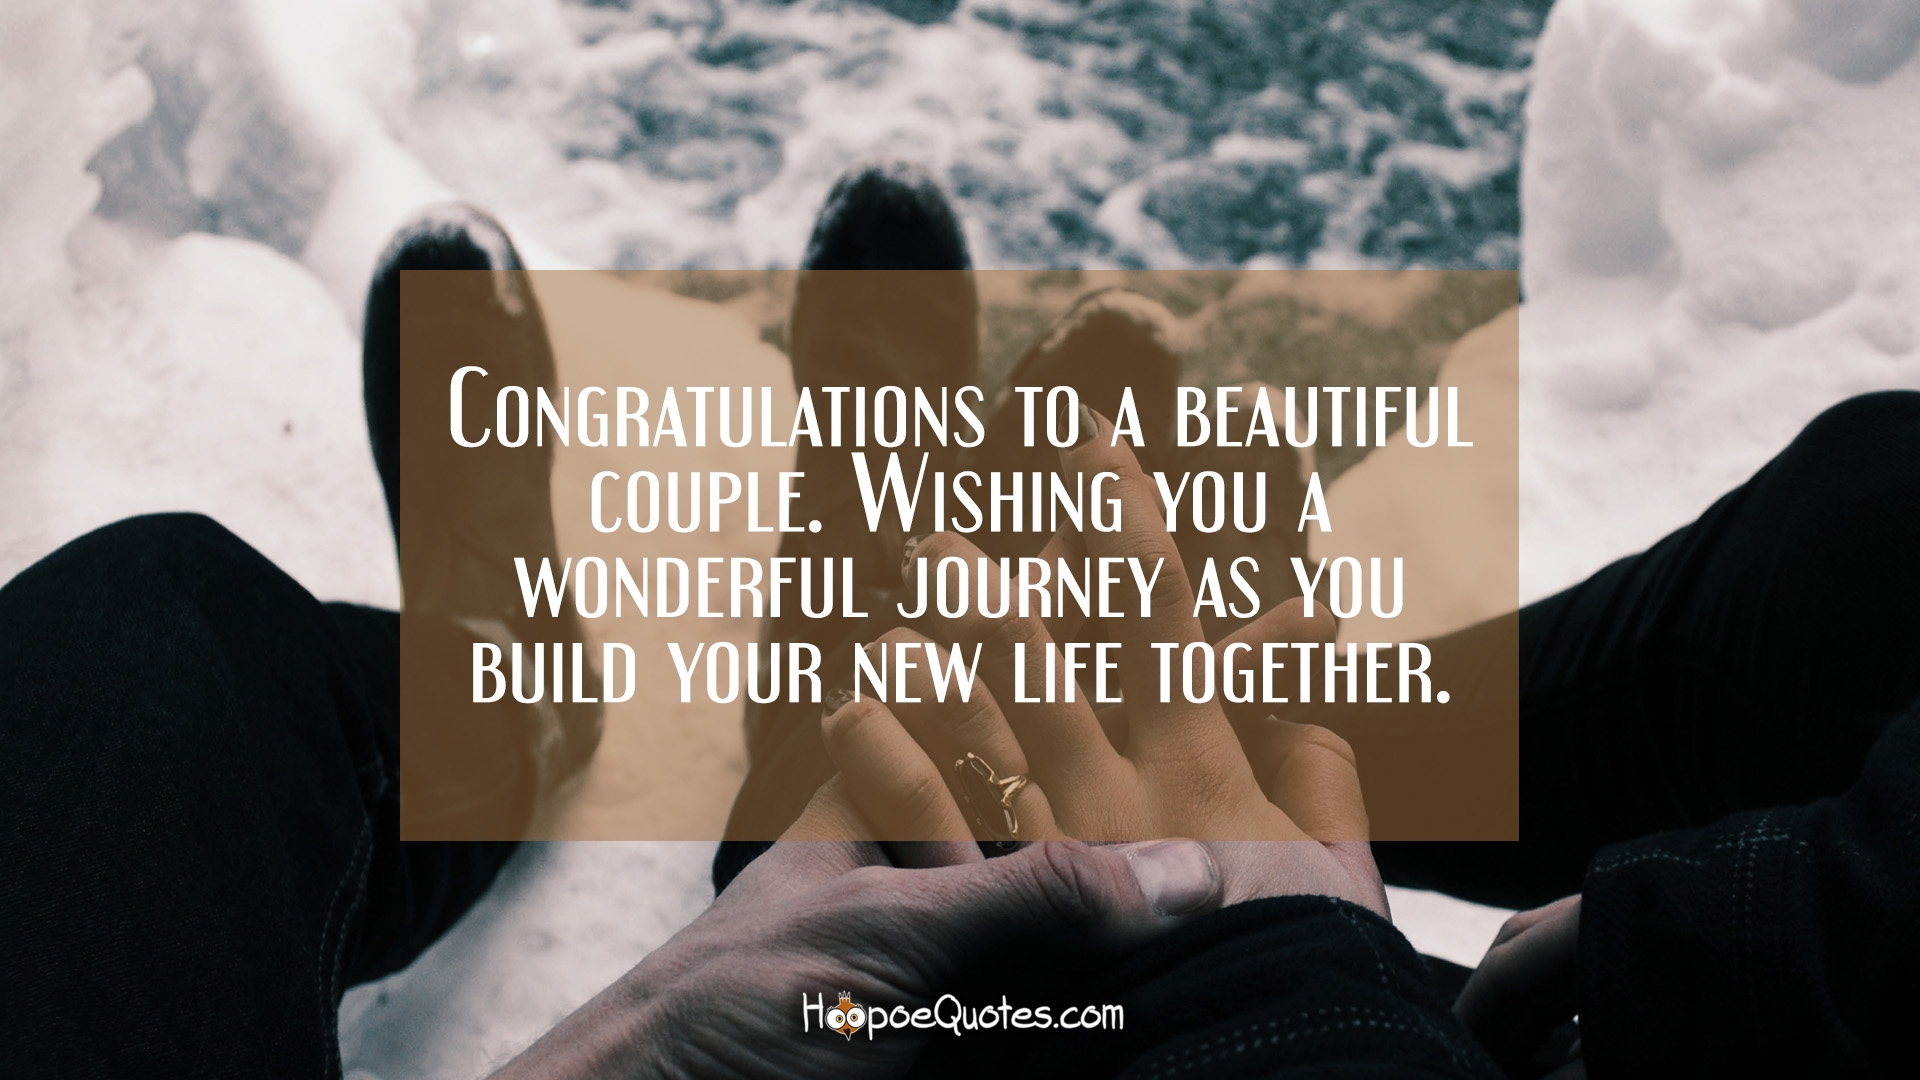 Congratulations To A Beautiful Couple. Wishing You A